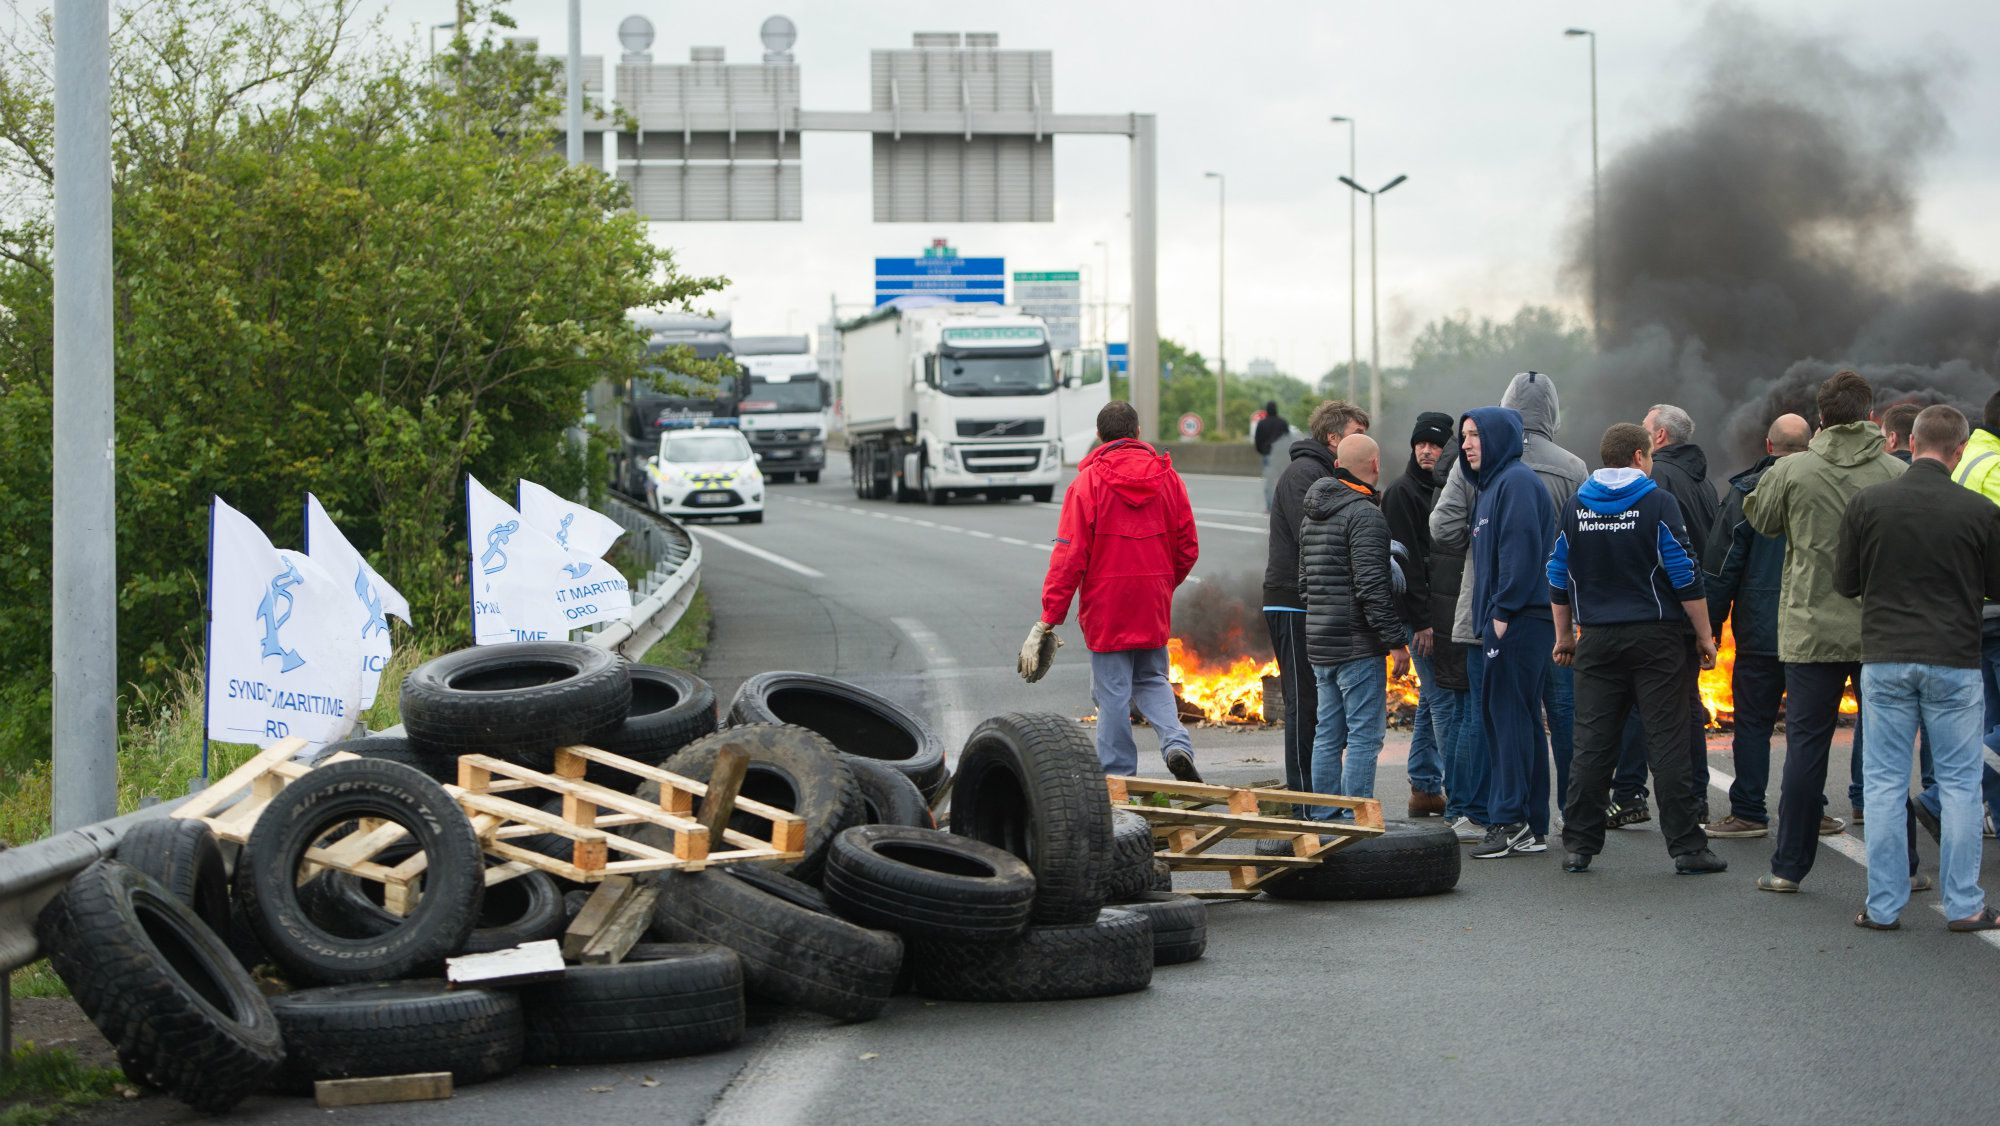 Striking ferry workers burn tyres as they block a ramp leading into the Eurotunnel before being dispersed by riot police in Calais, northern France, Tuesday, June 23, 2015.